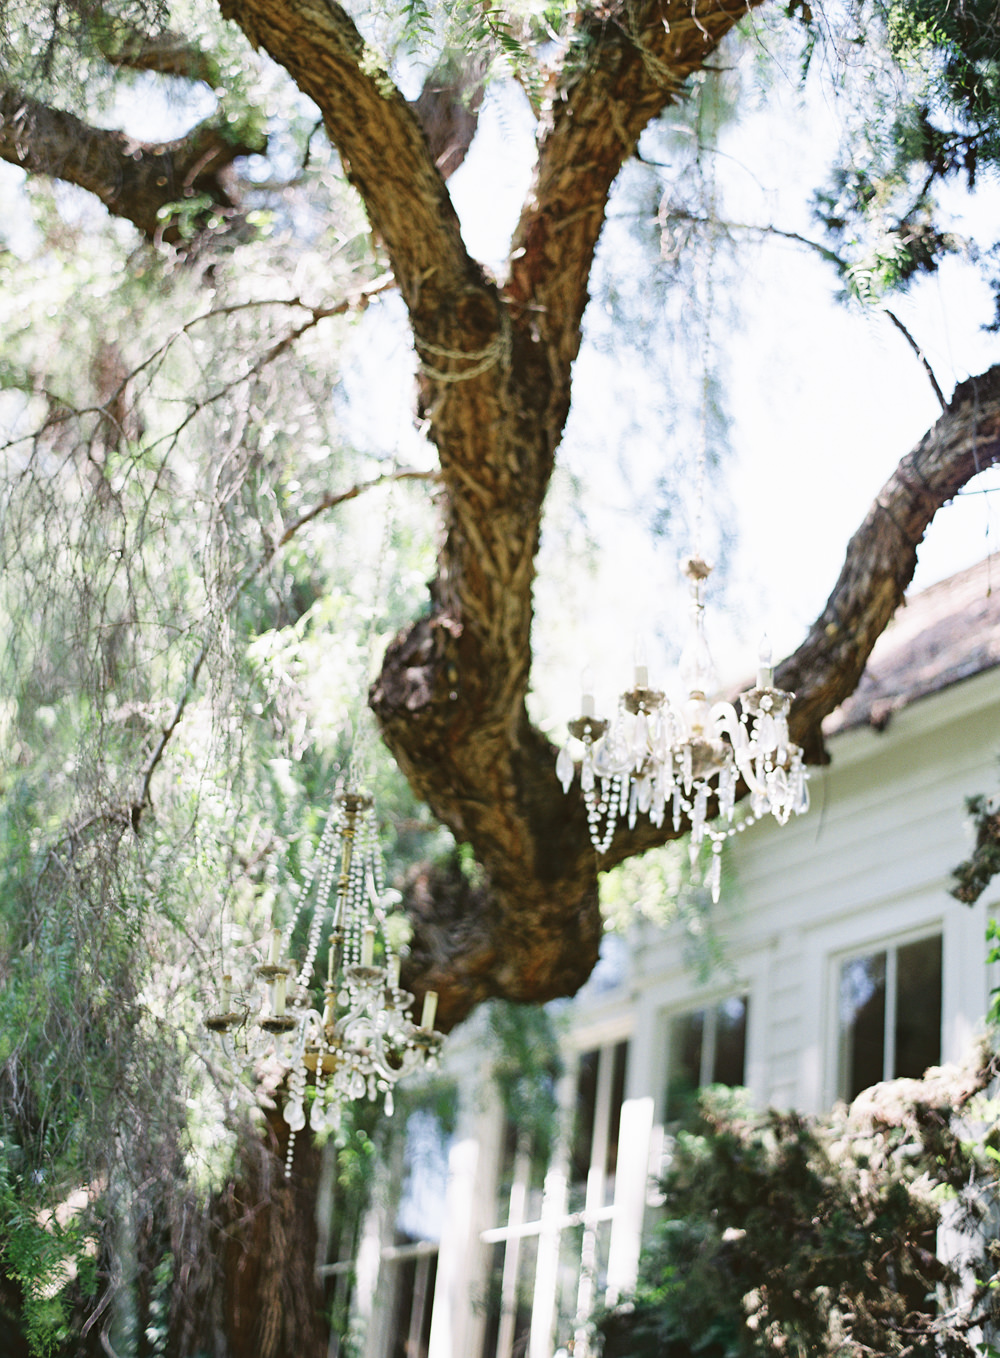 RomanticGardenWedding_WhiskersandWillow_003.jpg